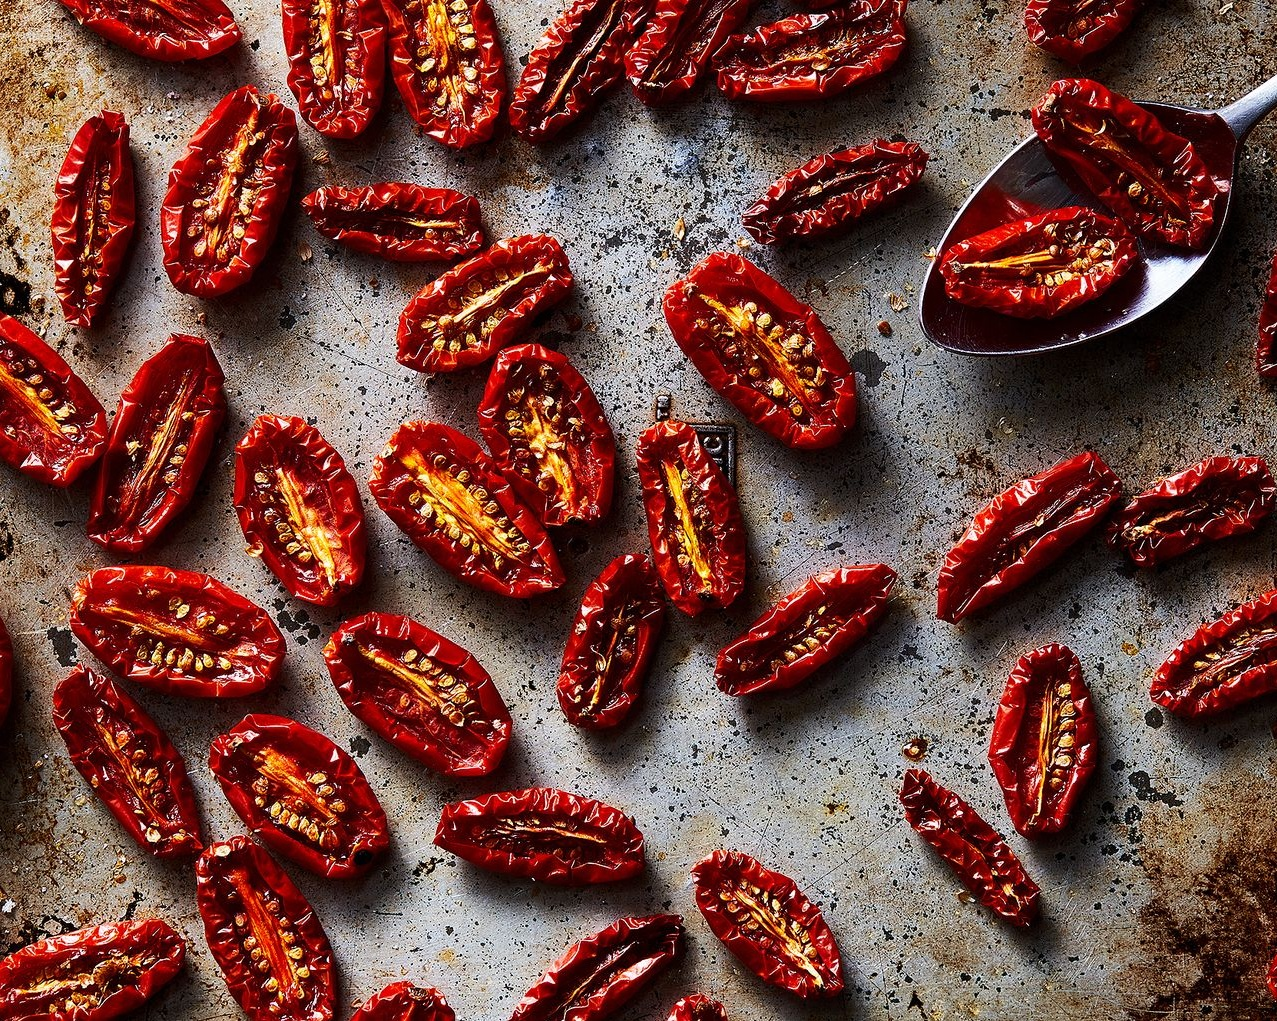 Photo by Julia Garland, Food52